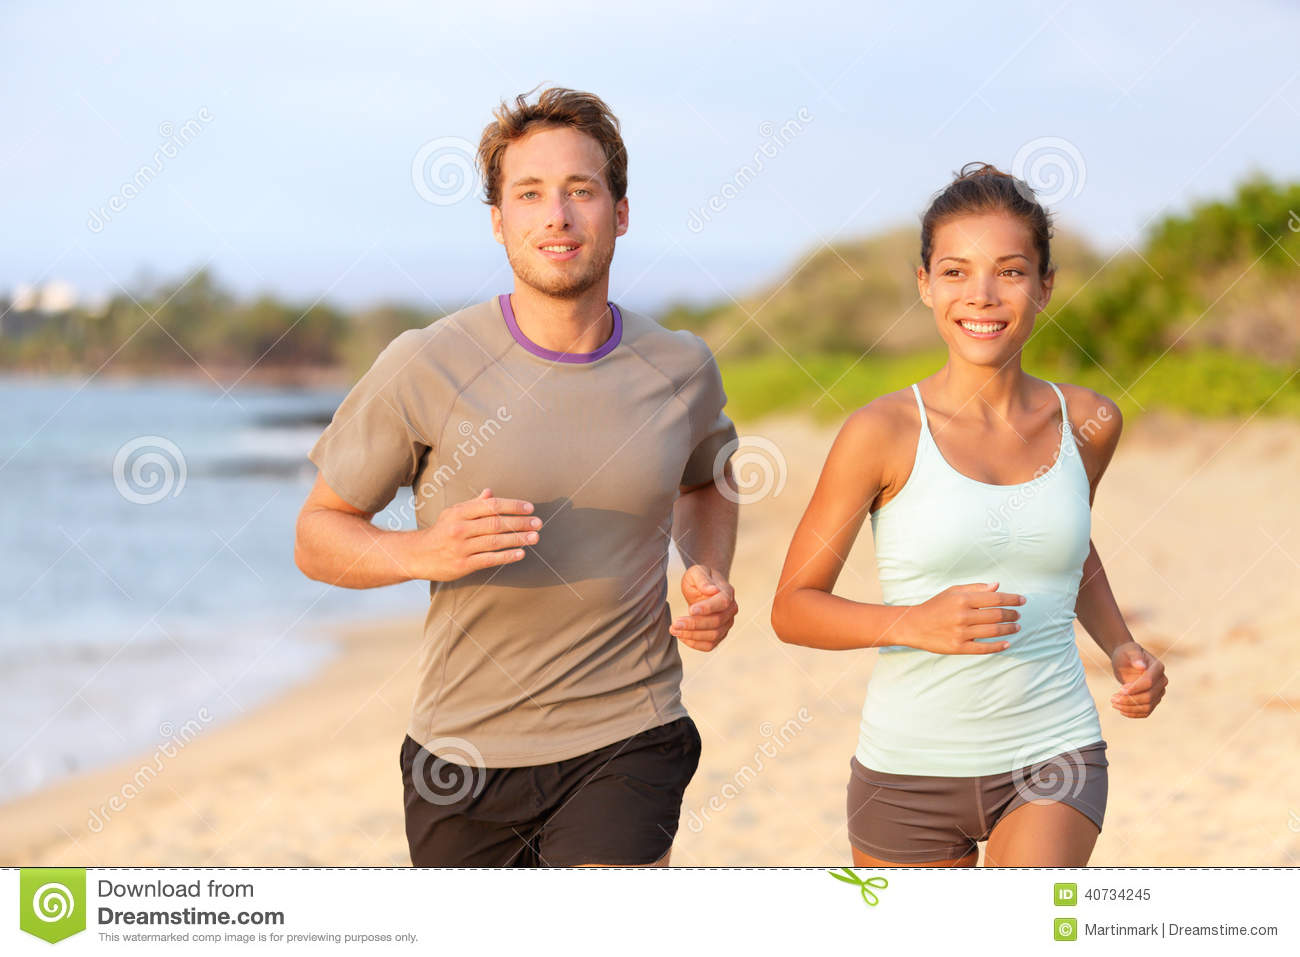 Fitness couple jogging outside on beach smiling